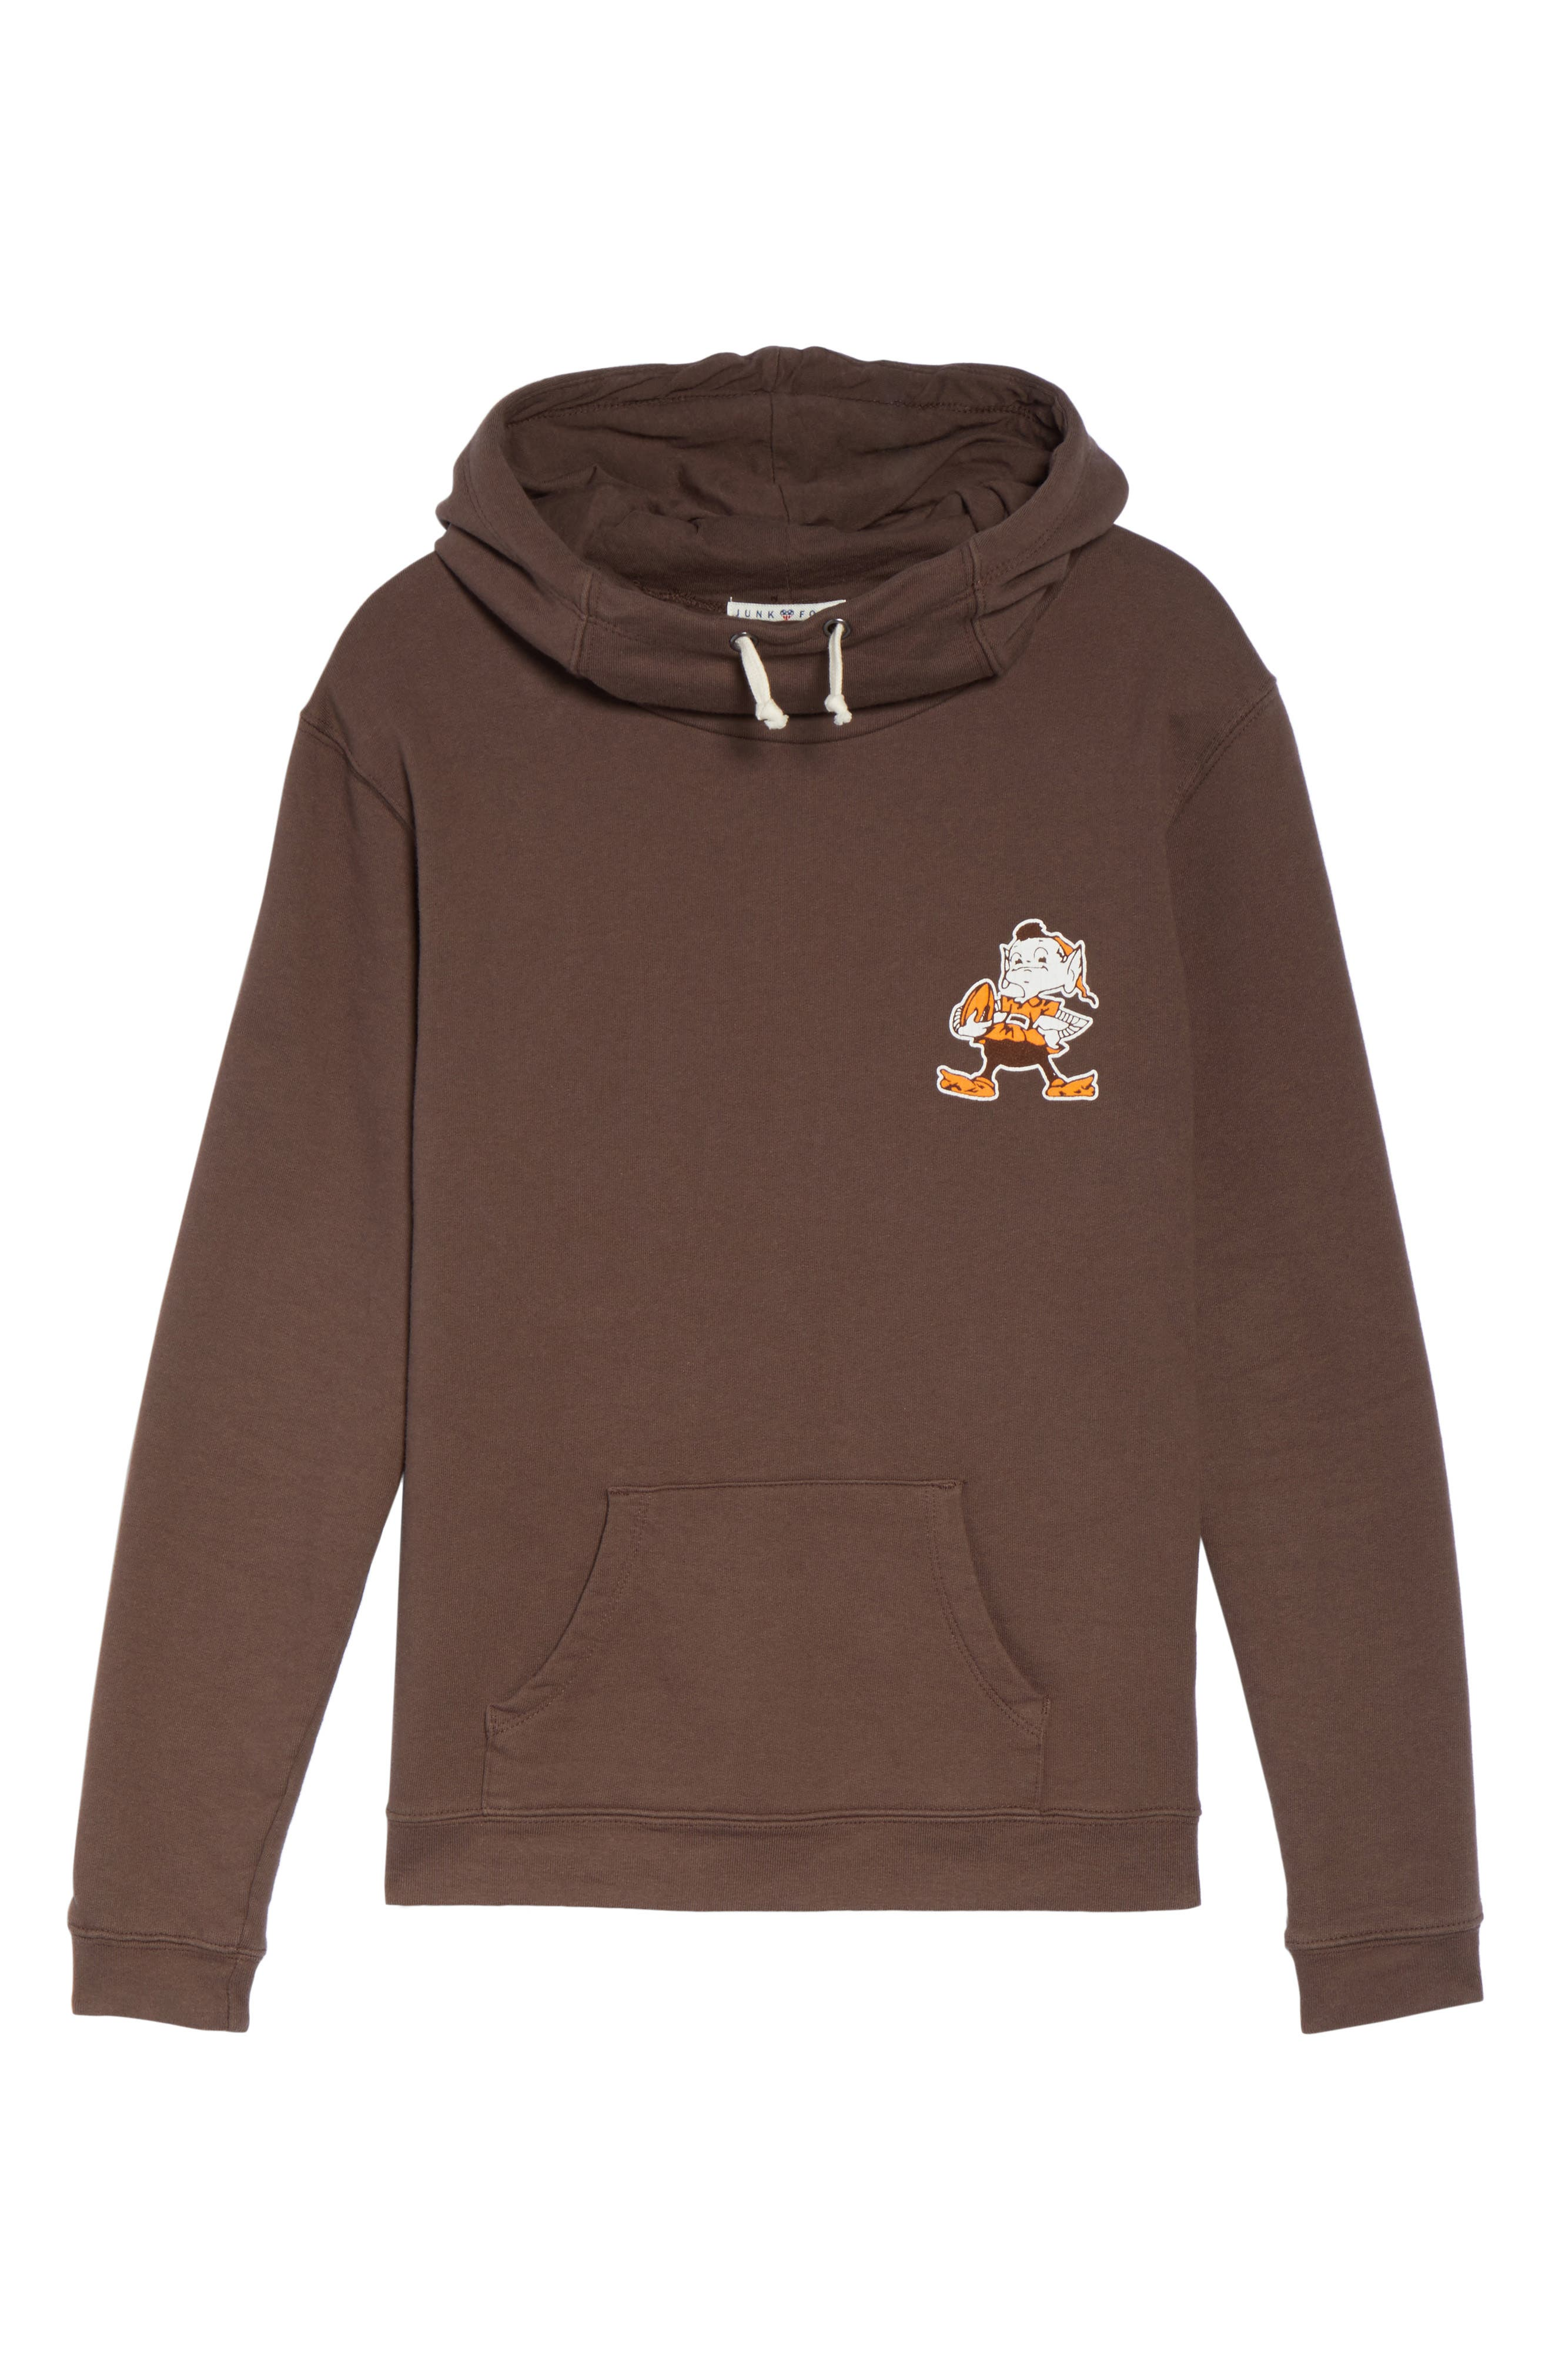 NFL Cleveland Browns Sunday Hoodie,                             Alternate thumbnail 6, color,                             200